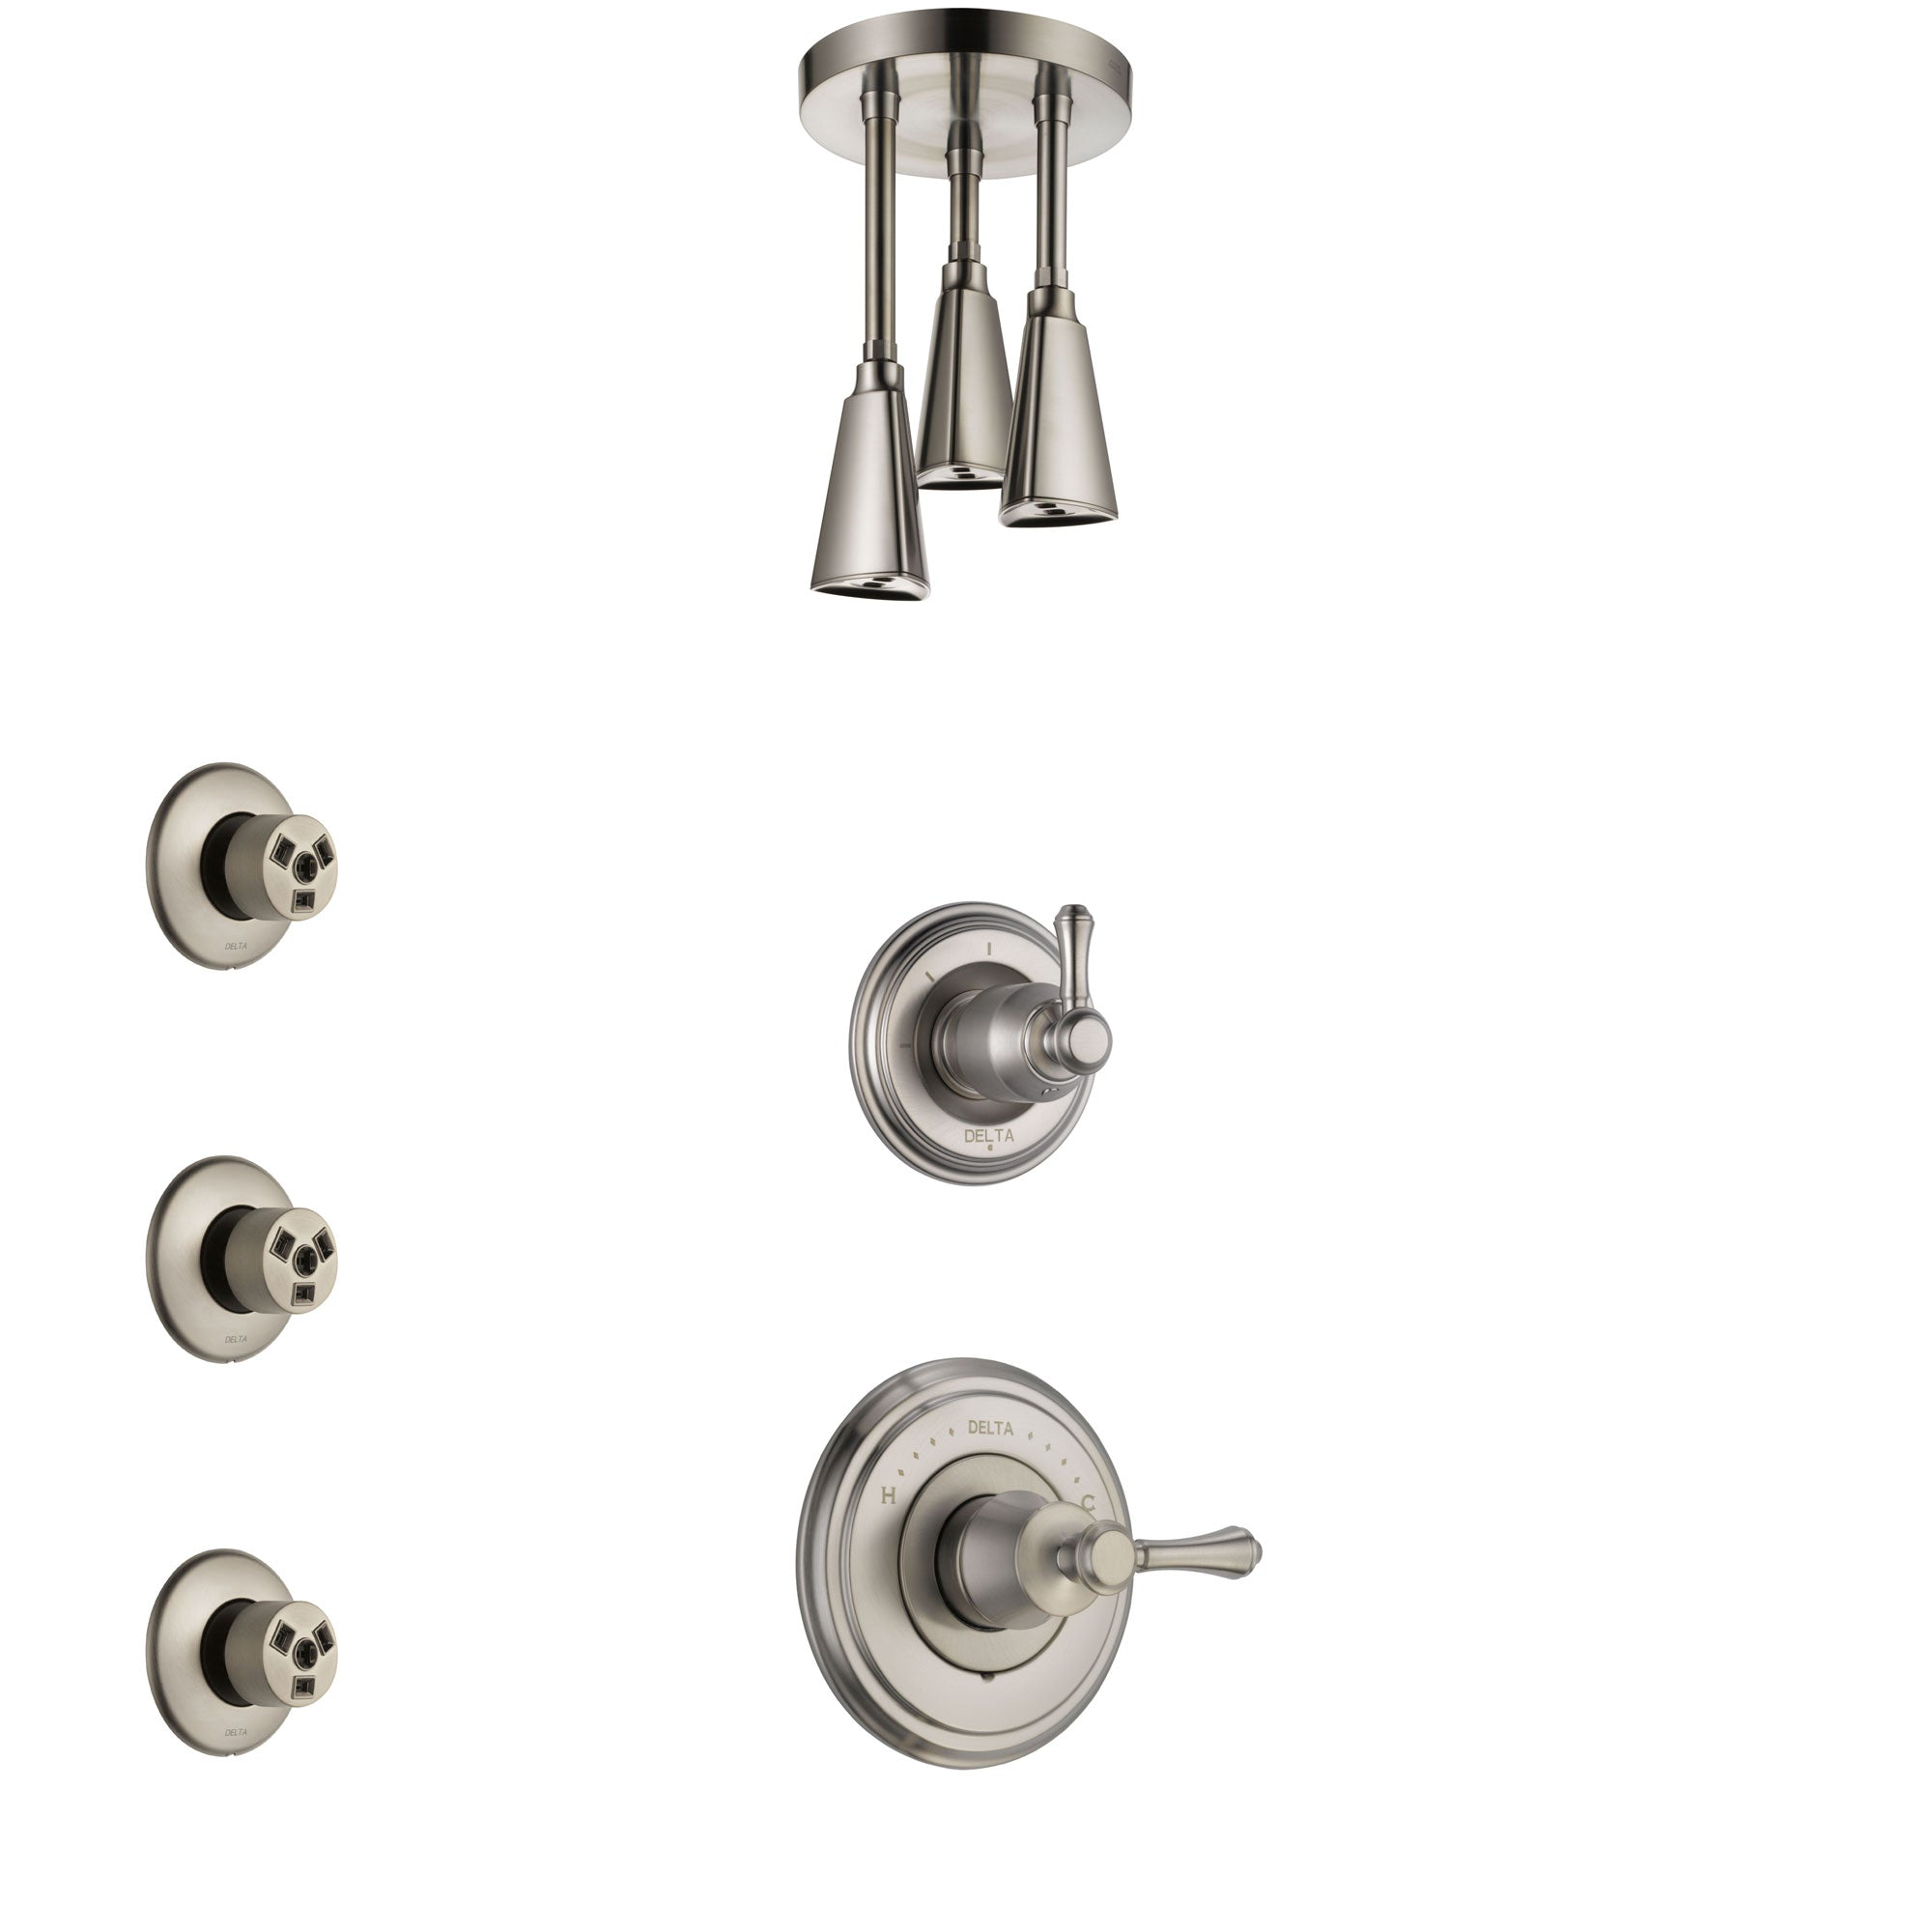 Delta Cassidy Stainless Steel Finish Shower System with Control Handle, 3-Setting Diverter, Ceiling Mount Showerhead, and 3 Body Sprays SS14973SS6